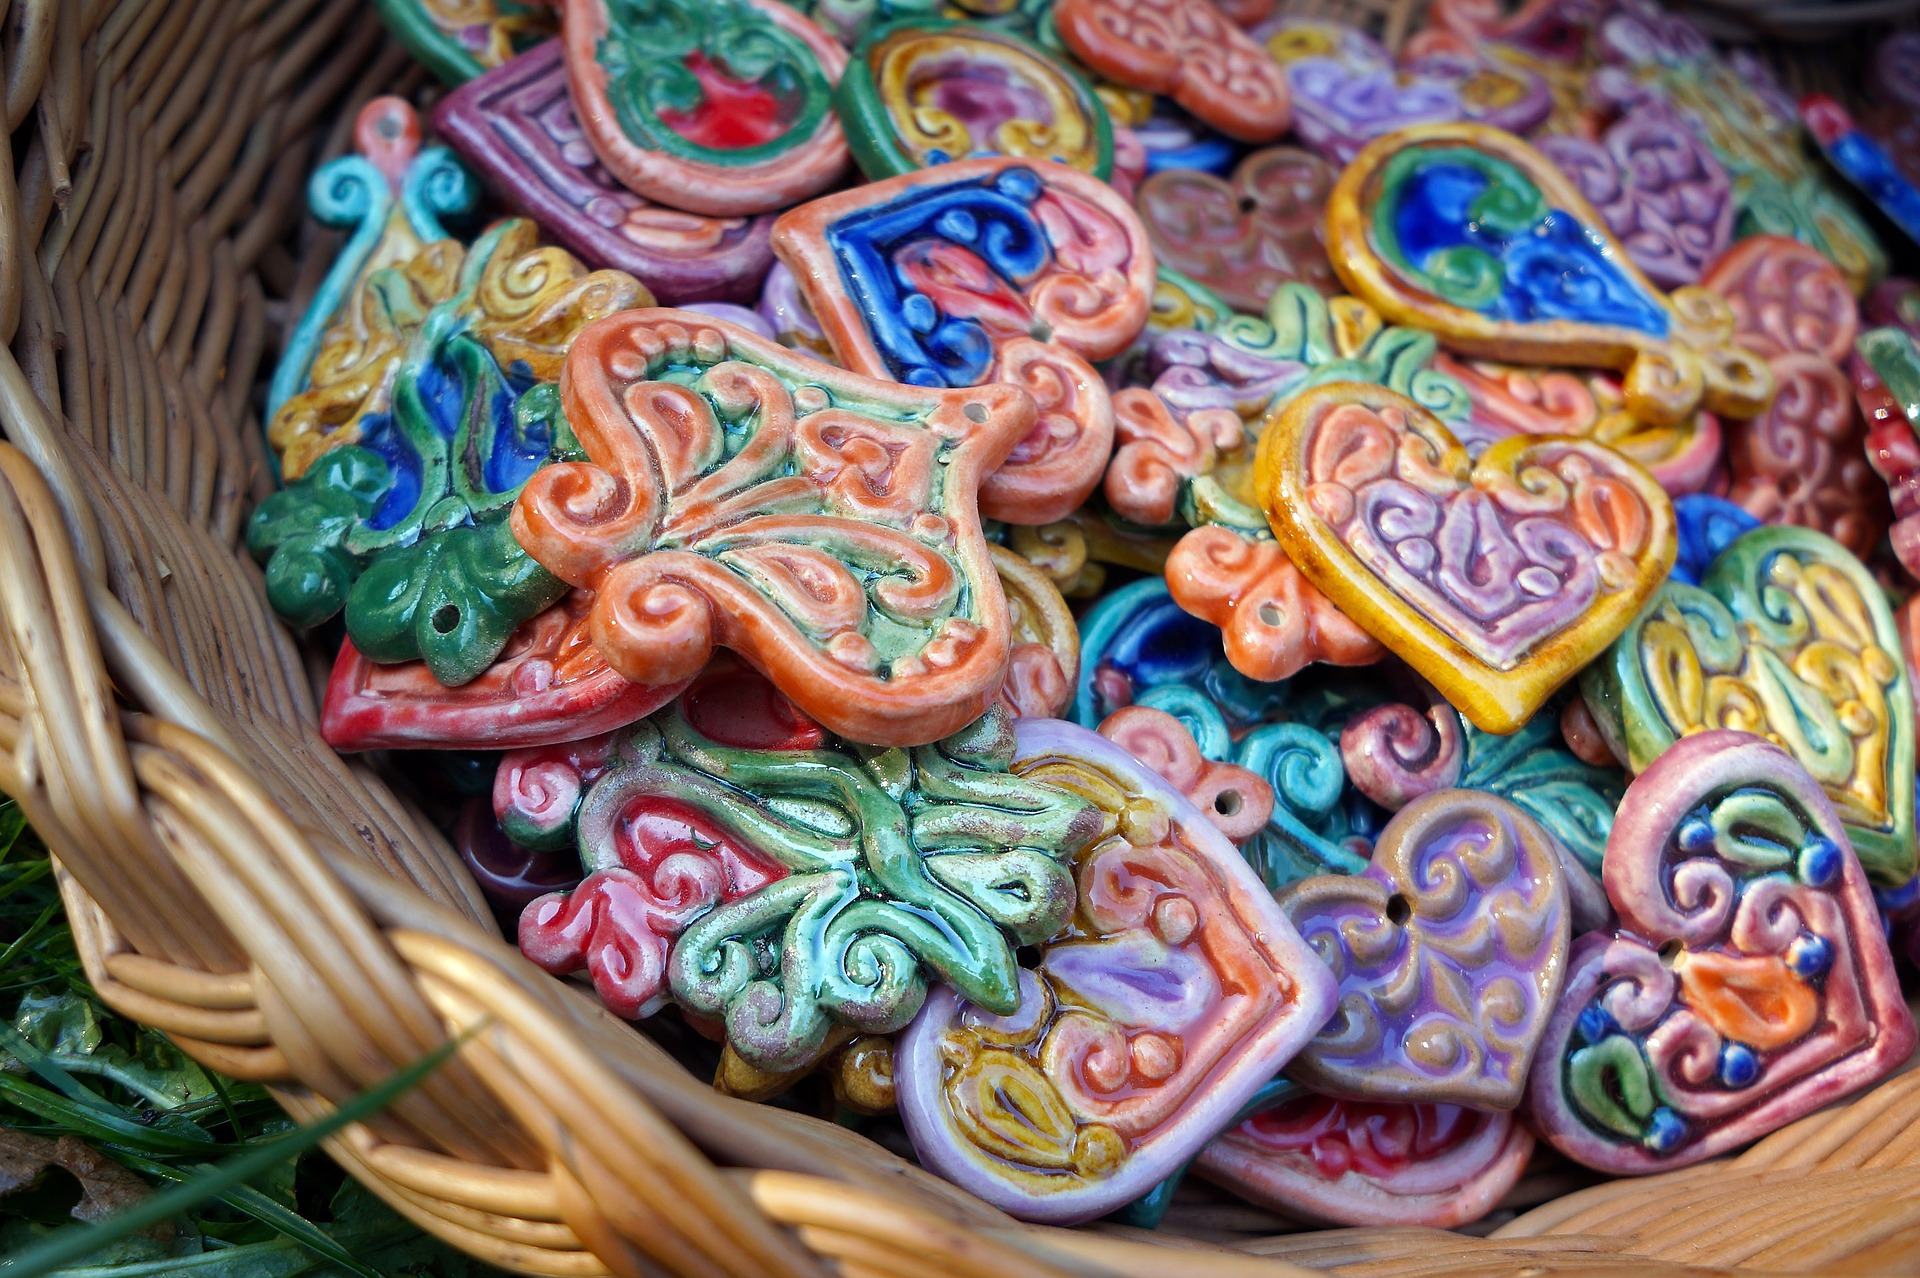 Arts And Crafts: Finance, Income and Selling Ideas